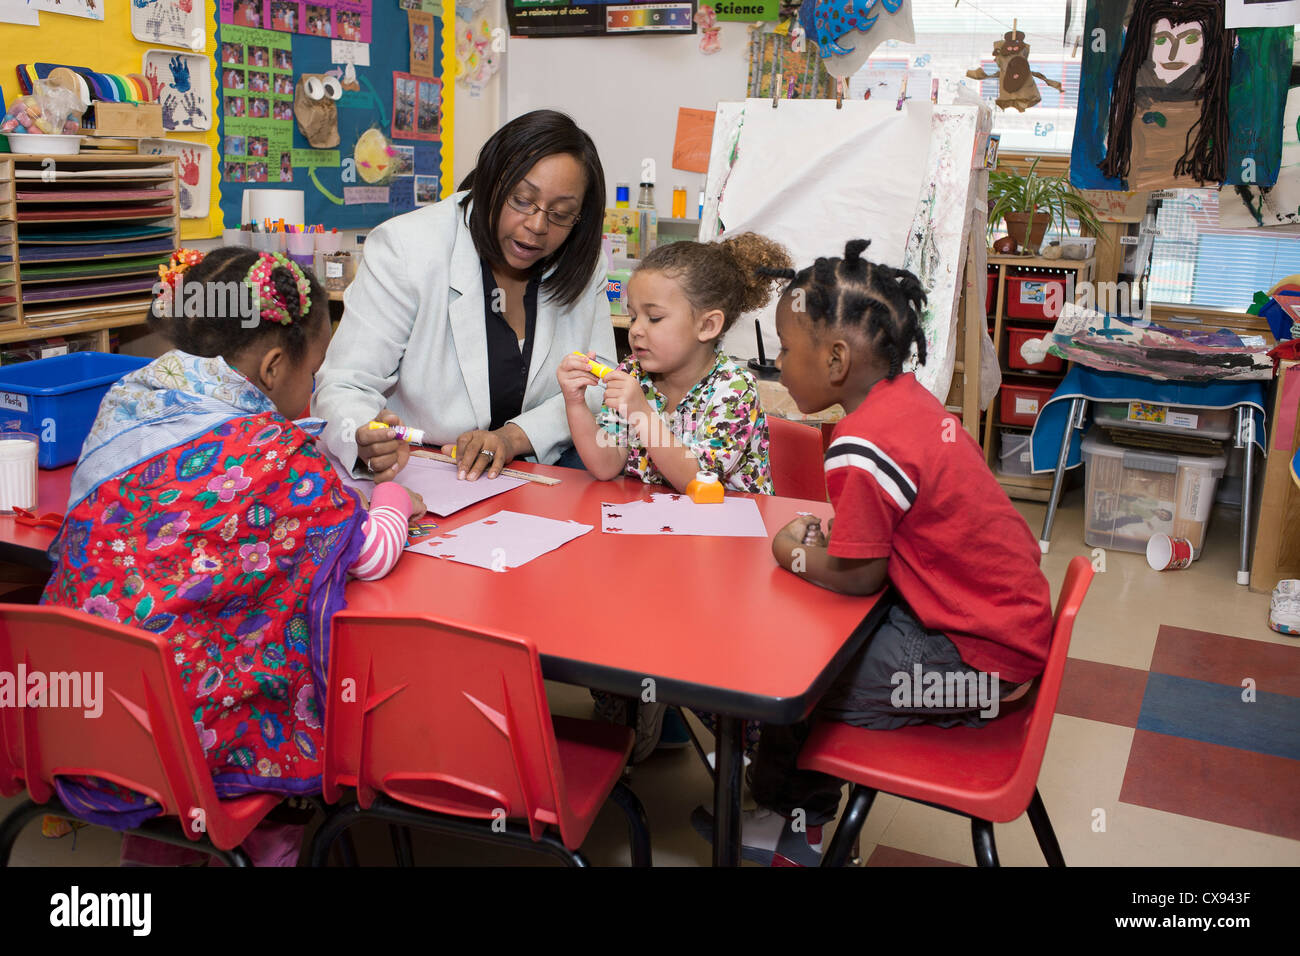 Female African American Preschool Teacher Drawing With